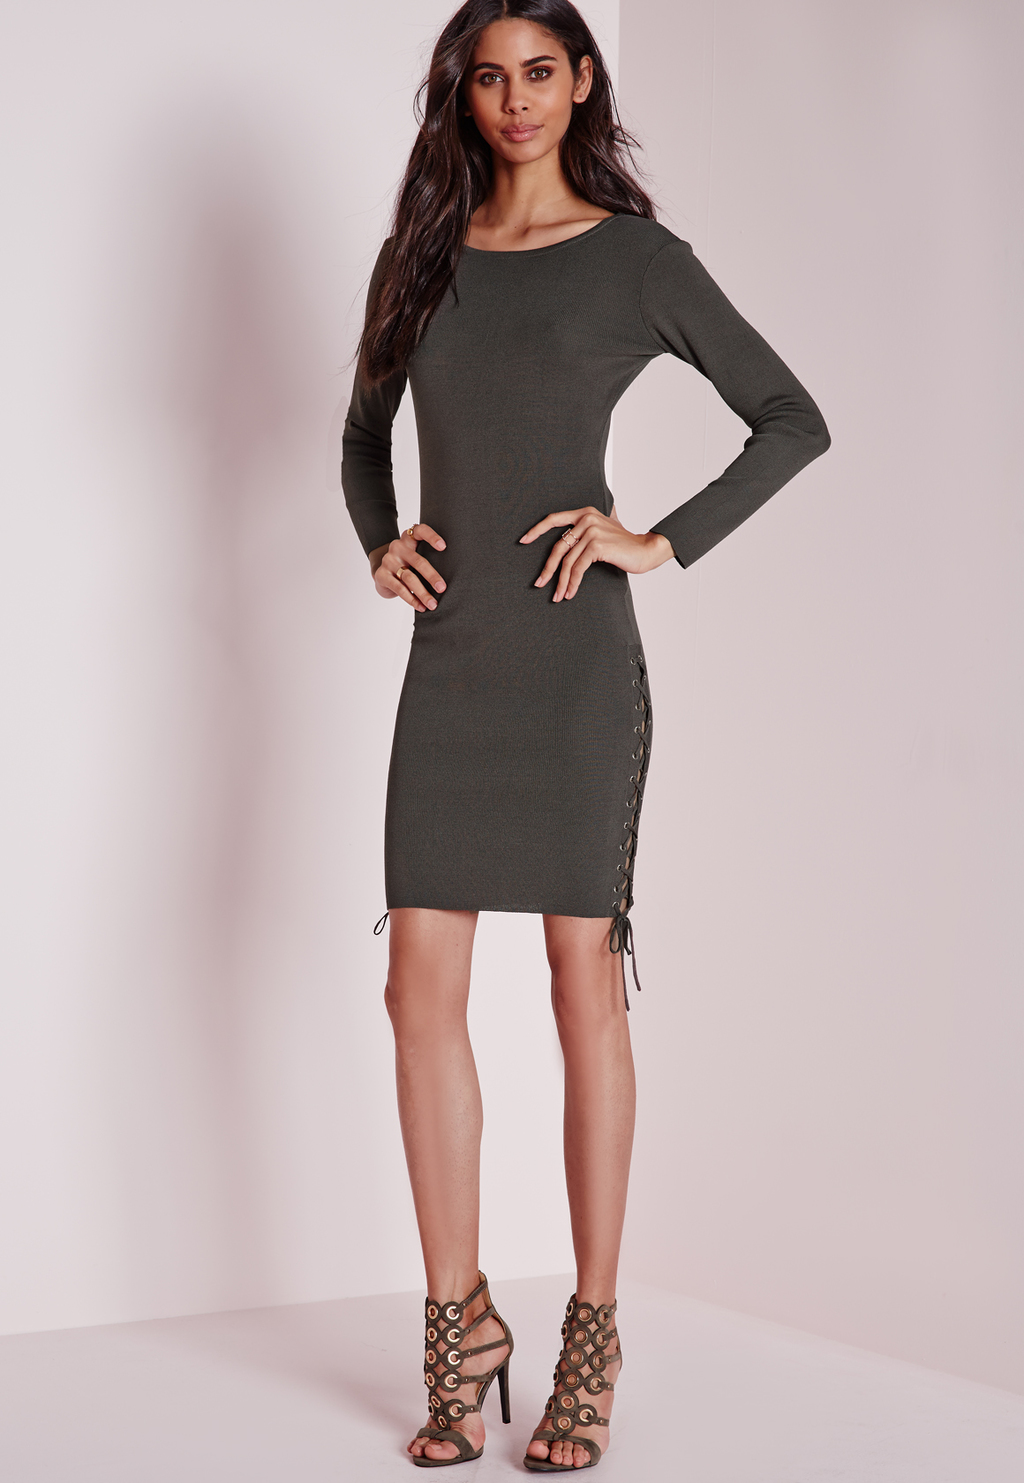 Lace Up Side Mini Dress Grey, Grey - style: shift; neckline: round neck; pattern: plain; predominant colour: charcoal; occasions: casual, evening, occasion; length: just above the knee; fit: body skimming; fibres: viscose/rayon - stretch; sleeve length: long sleeve; sleeve style: standard; pattern type: fabric; texture group: jersey - stretchy/drapey; season: a/w 2015; wardrobe: basic